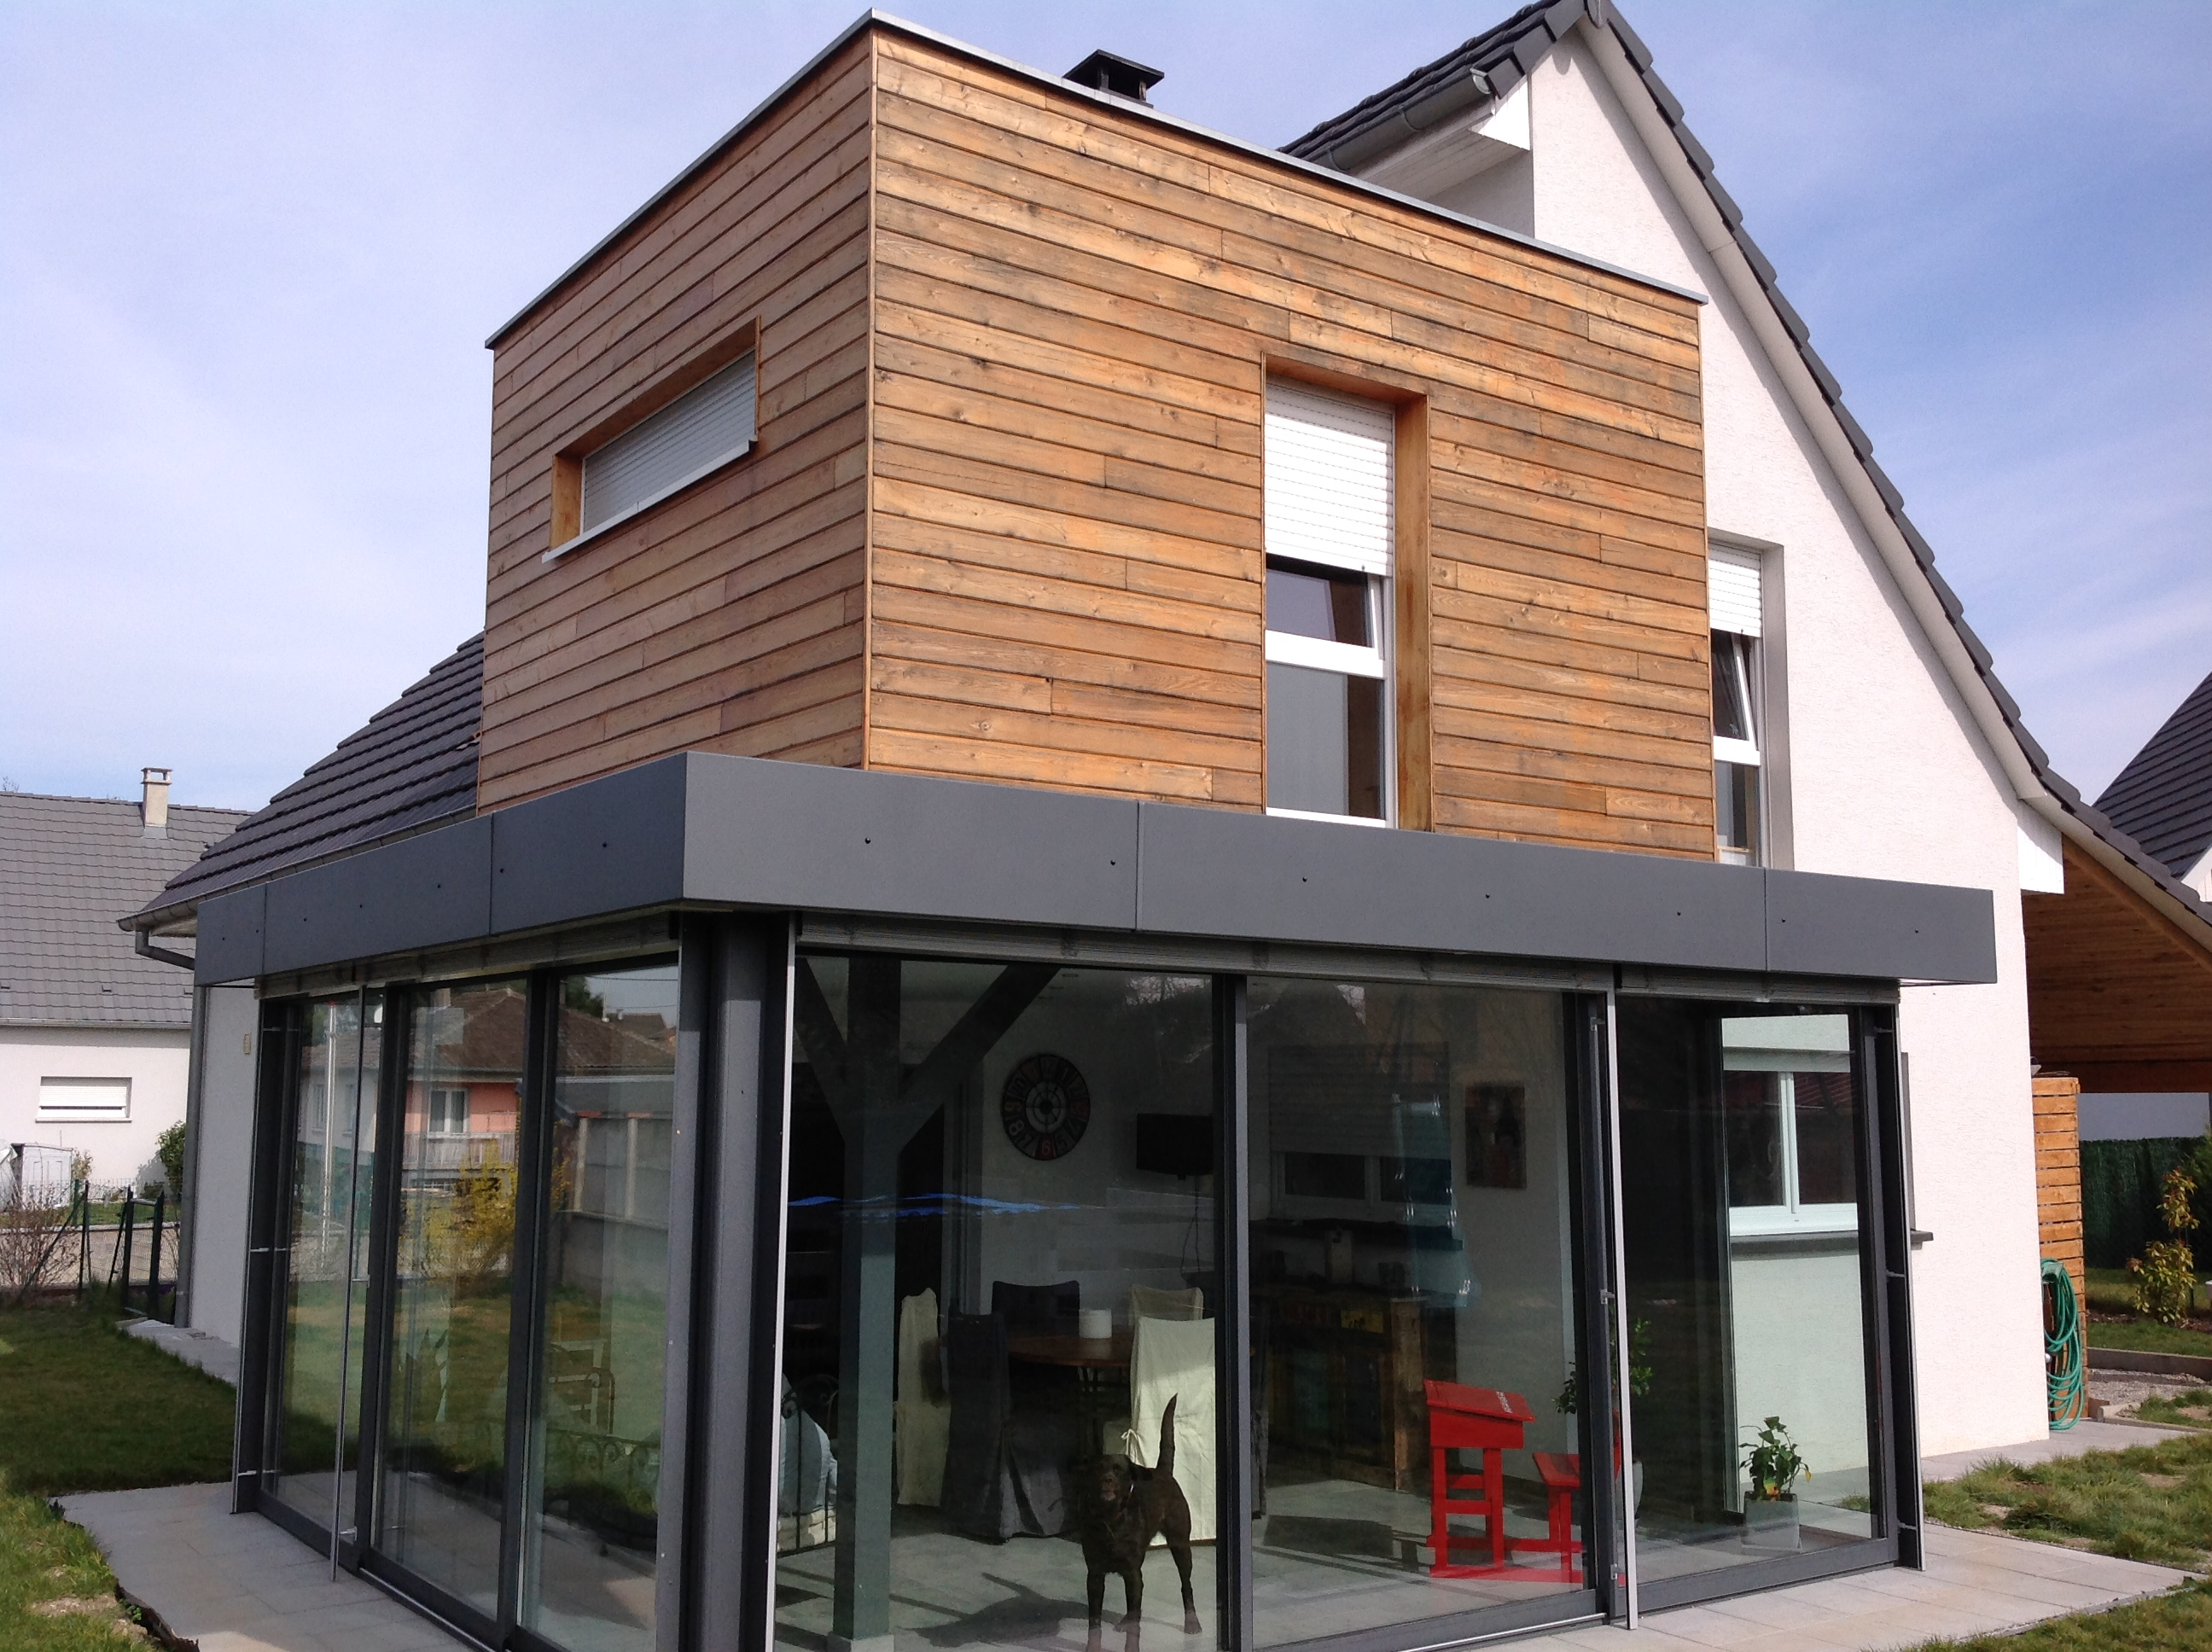 Extension de maison en tage abt construction bois for Maison toit plat pas cher